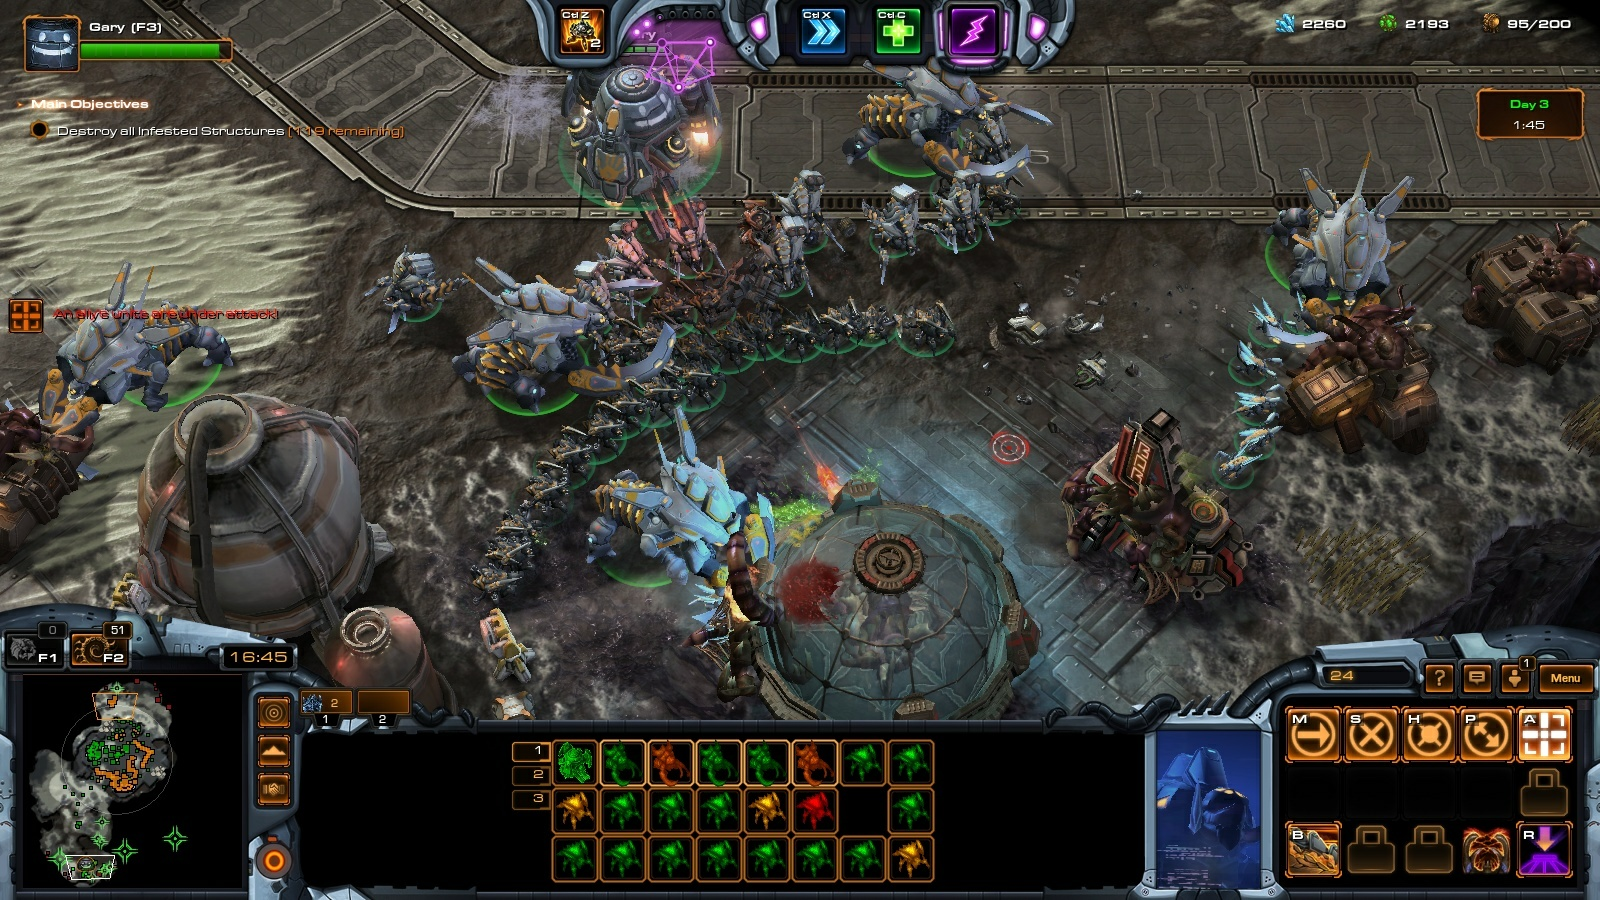 Not So Massively: StarCraft II co-op is one of online gaming's